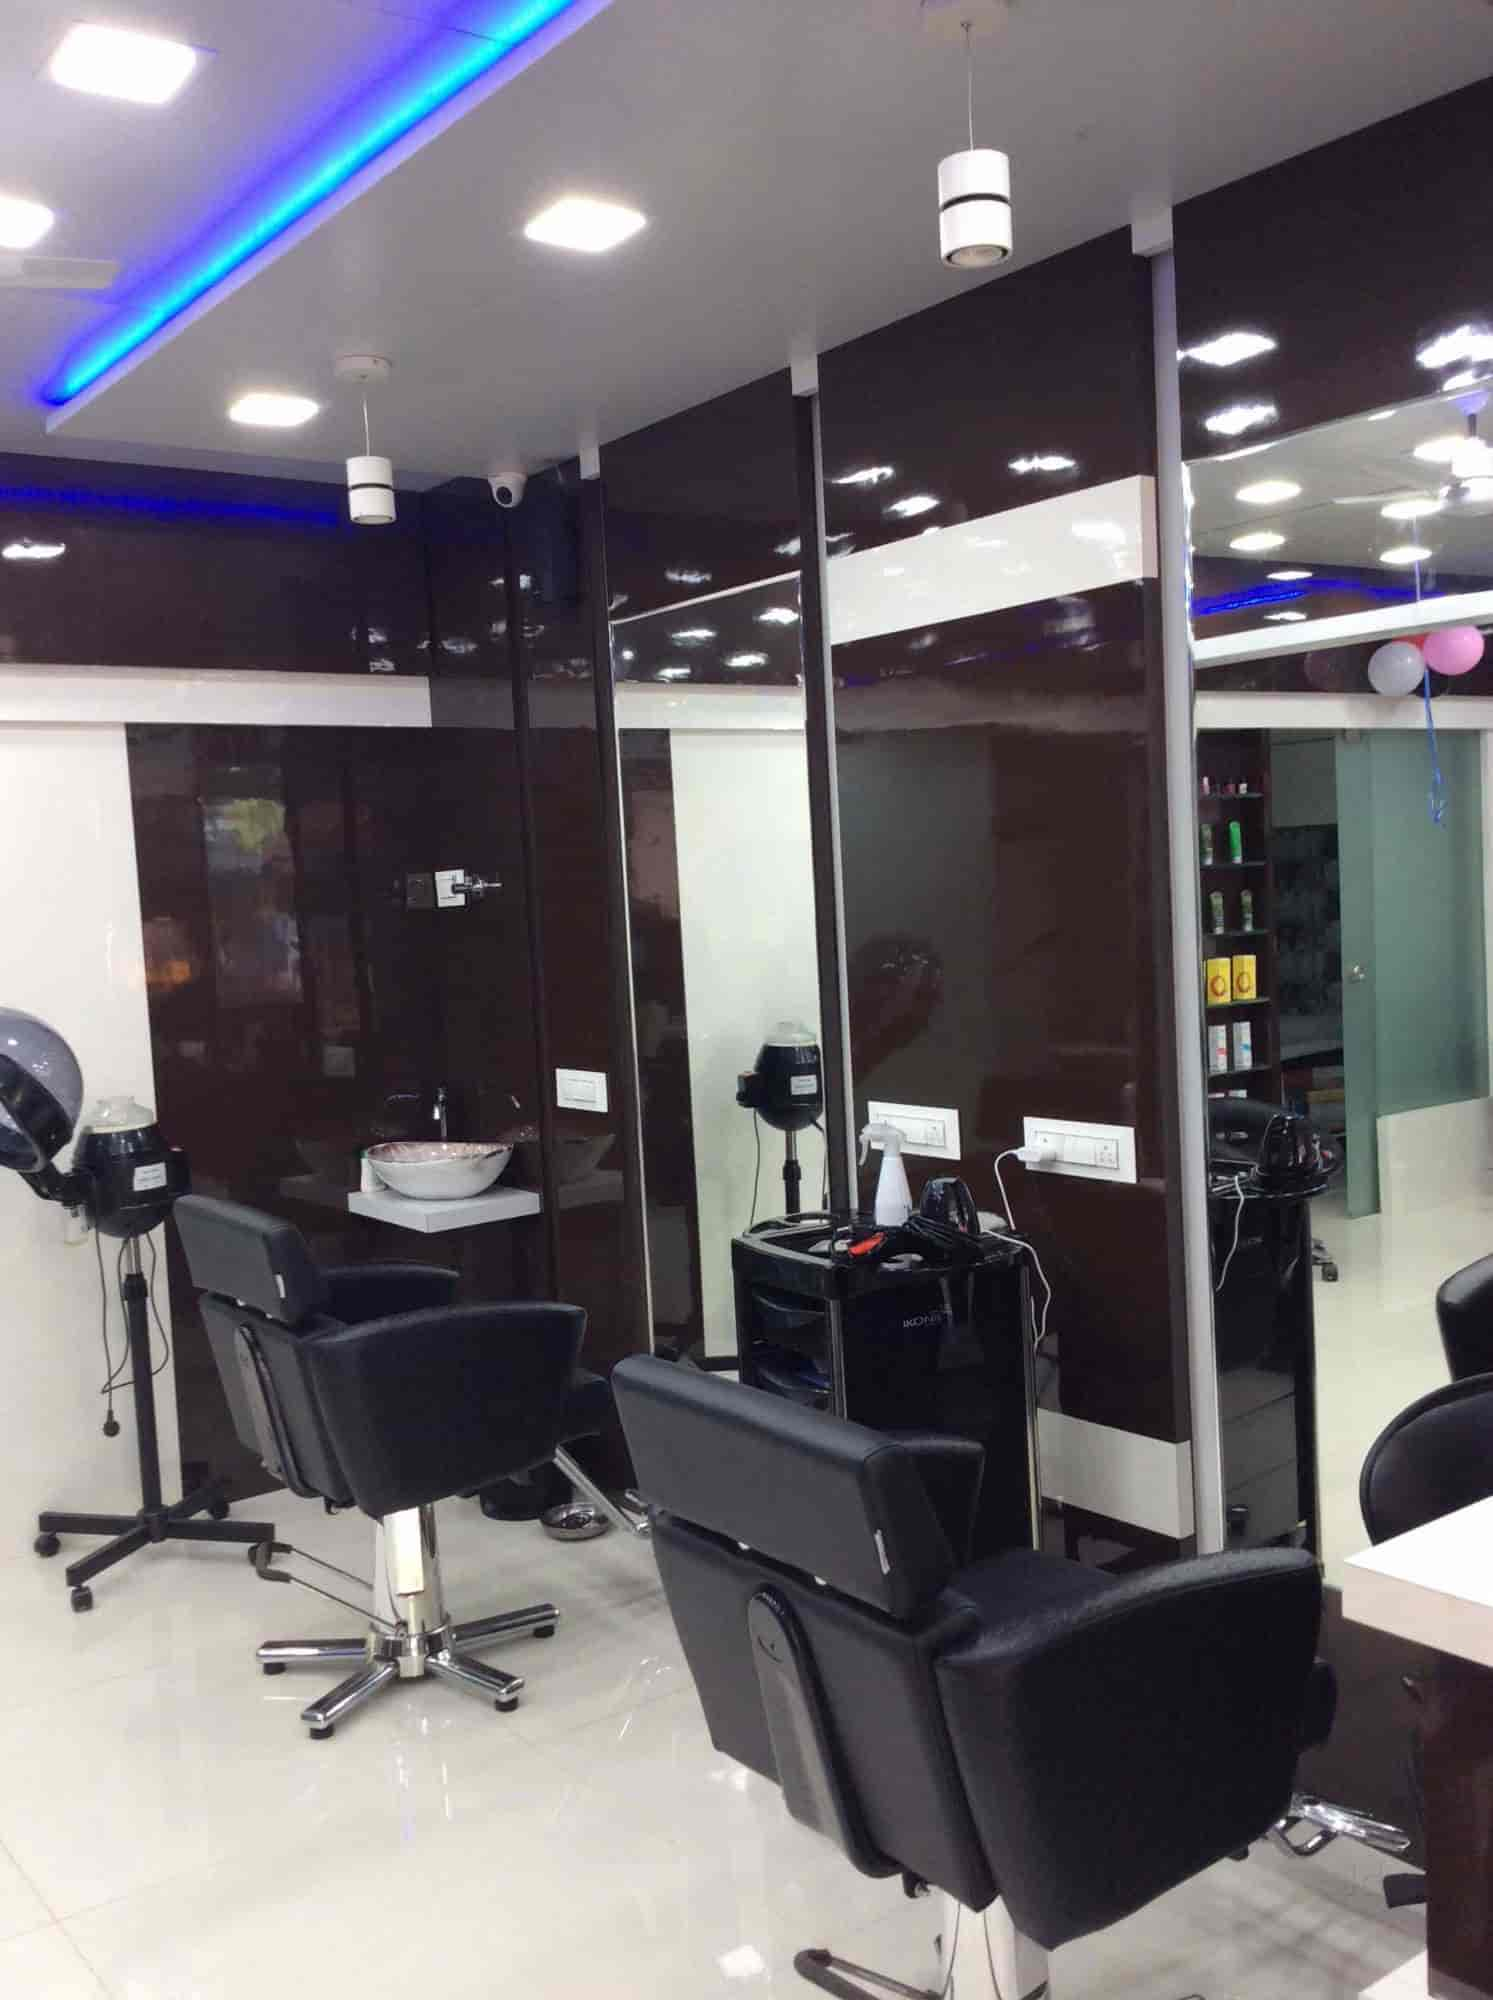 hair wizard unisex salon photos, mira road, mumbai- pictures